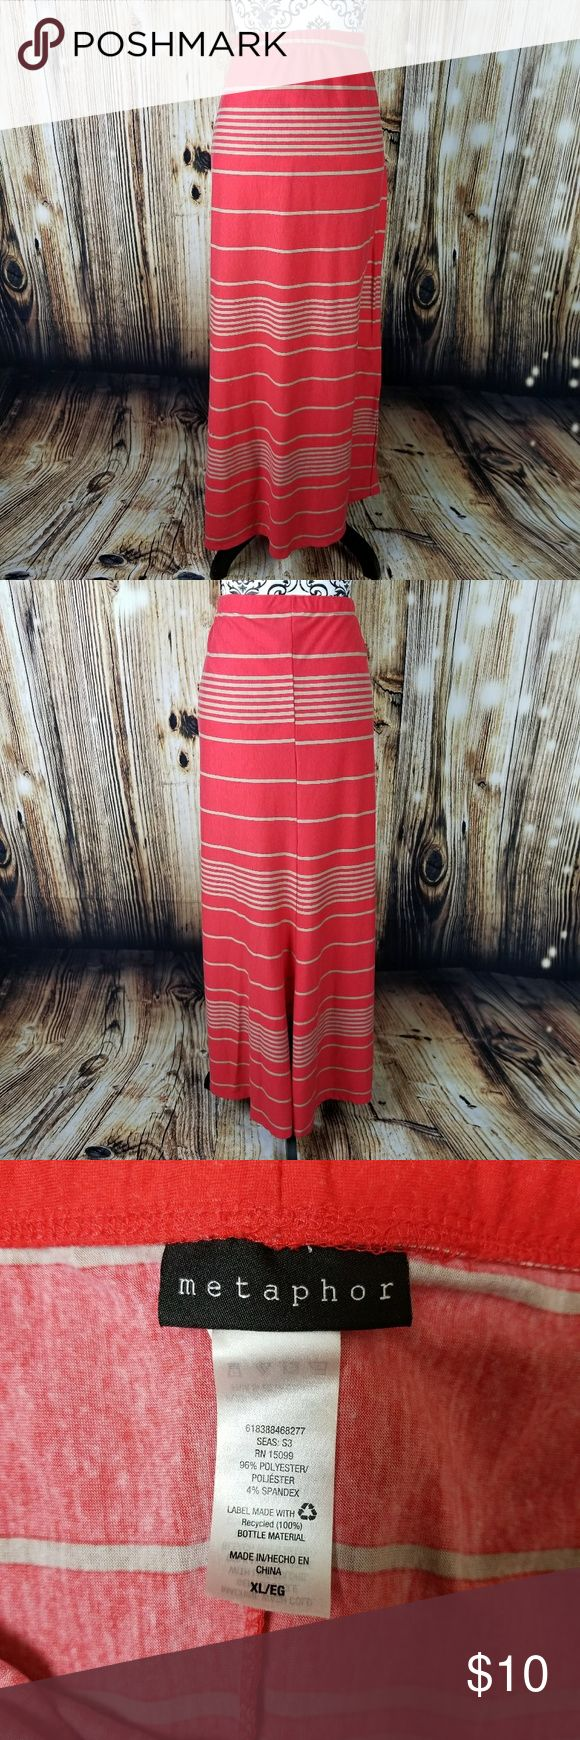 Orange and Tan Stripped Maxi Skirt XL Size XL Orange and Tan Stripped Maxi Skirt from Metaphor. It does show some pilling.  All approximate measurements are taken flat and unstretched Waist: 17.5 inches Hips: 21 inches Length: 41.5 inches Metaphor Skirts